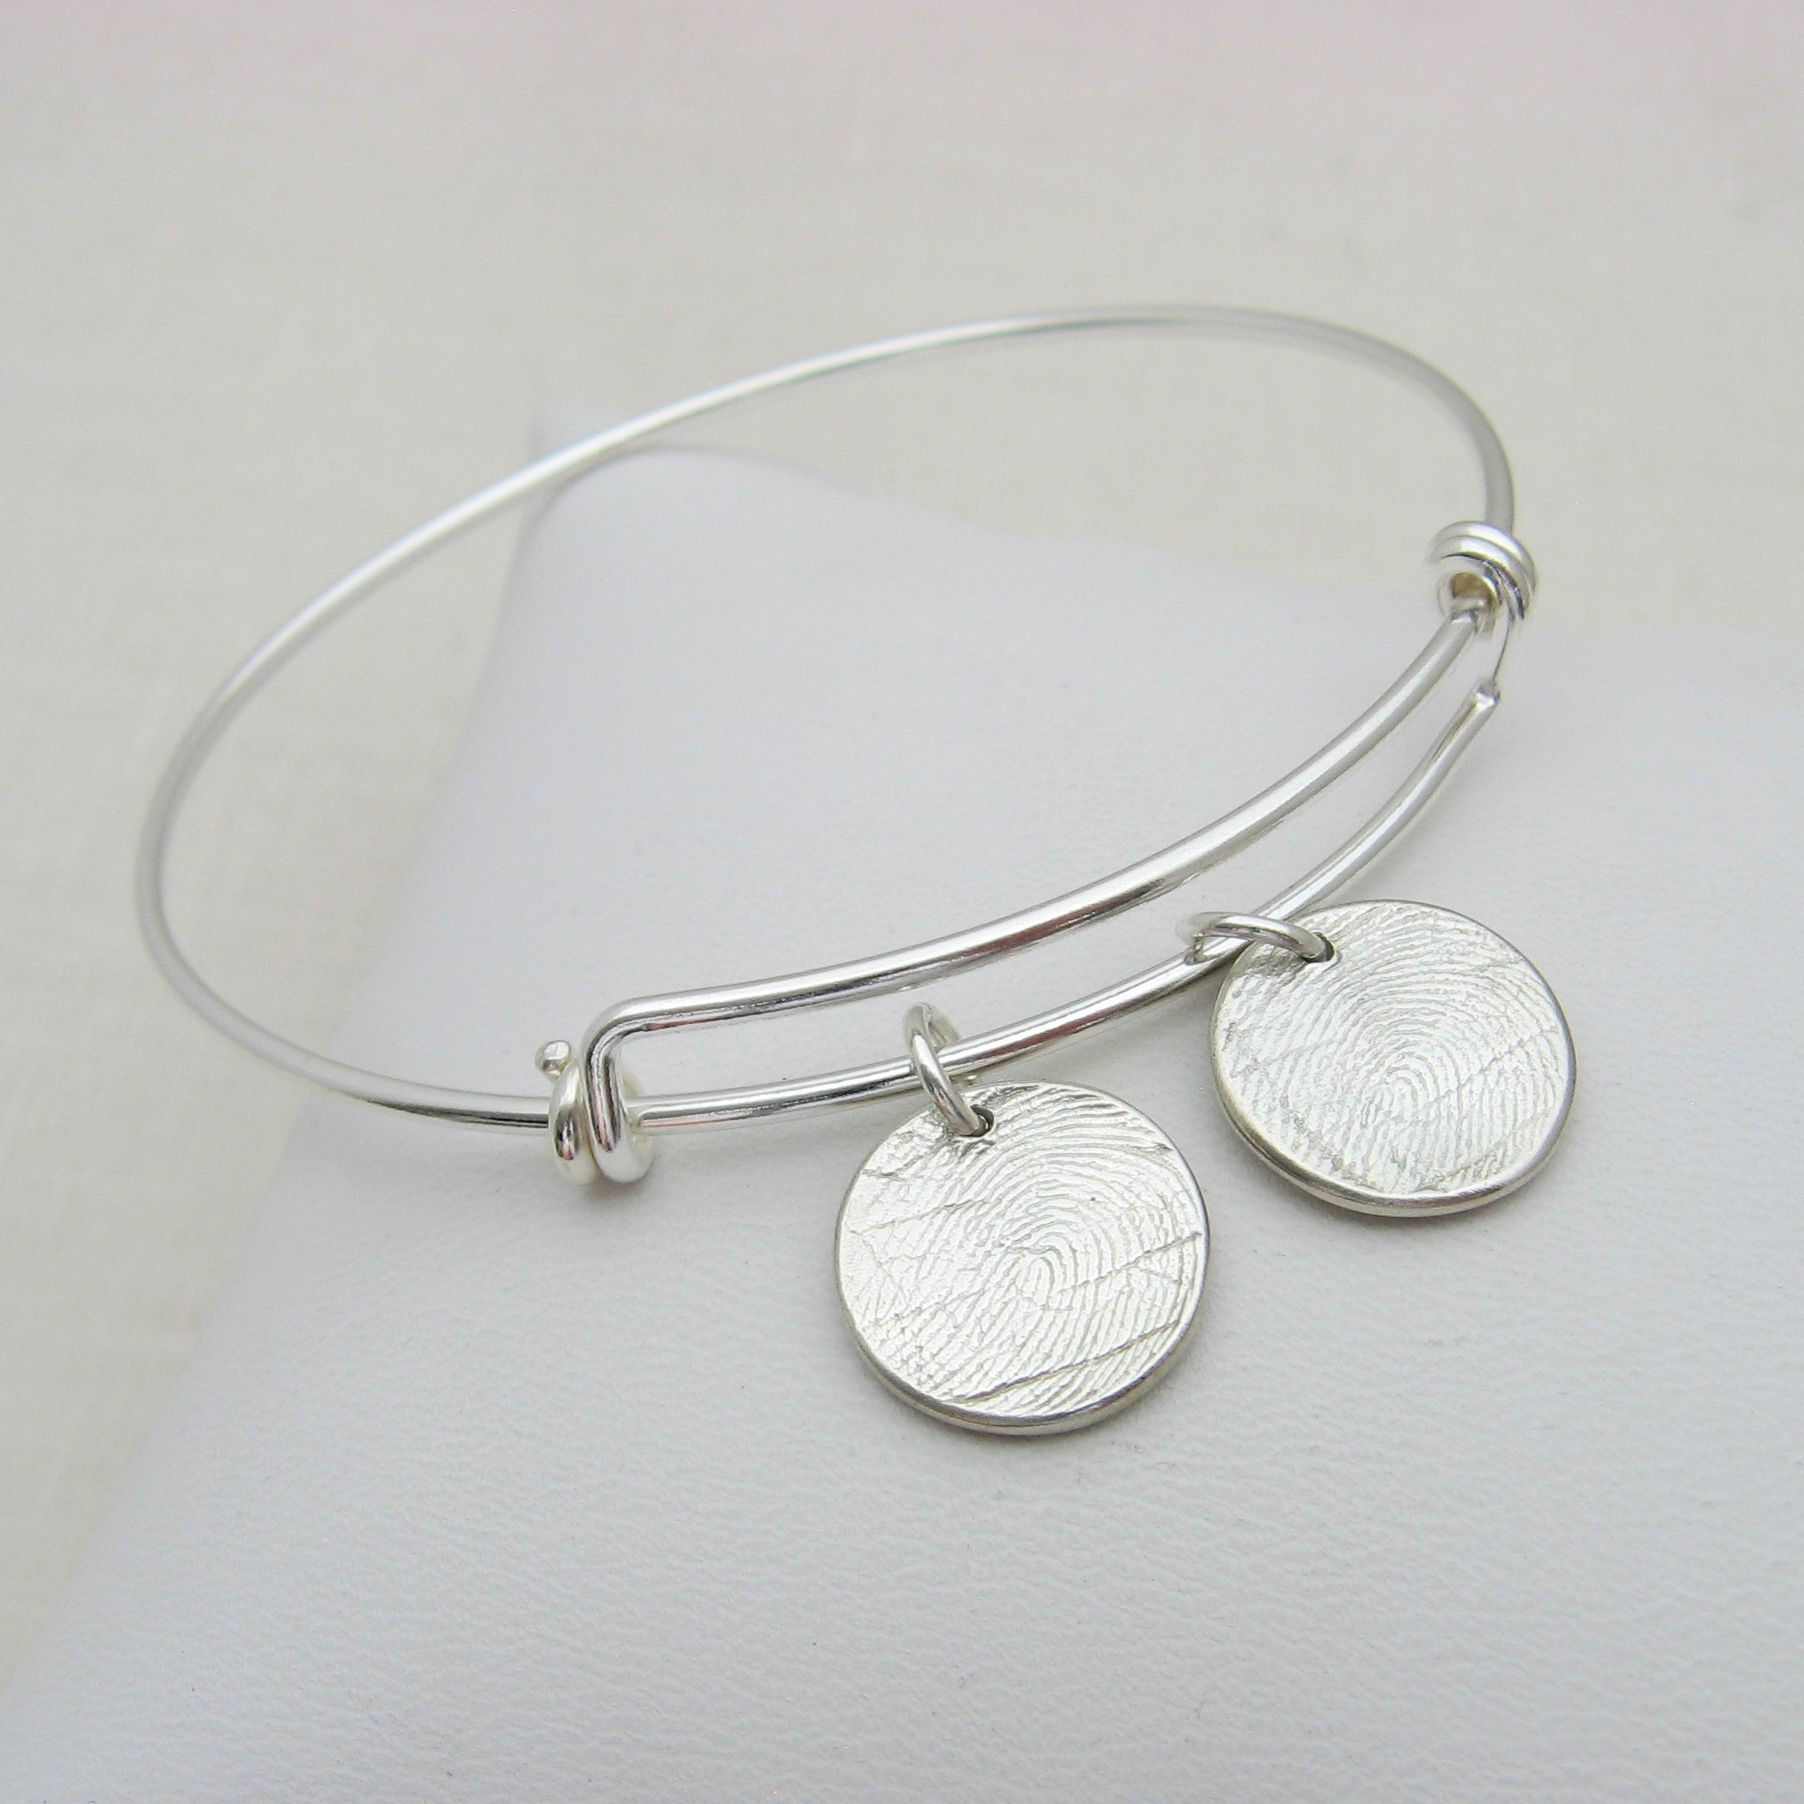 Buy hand crafted adjustable silver bangle bracelet with for Fingerprint jewelry by first impressions